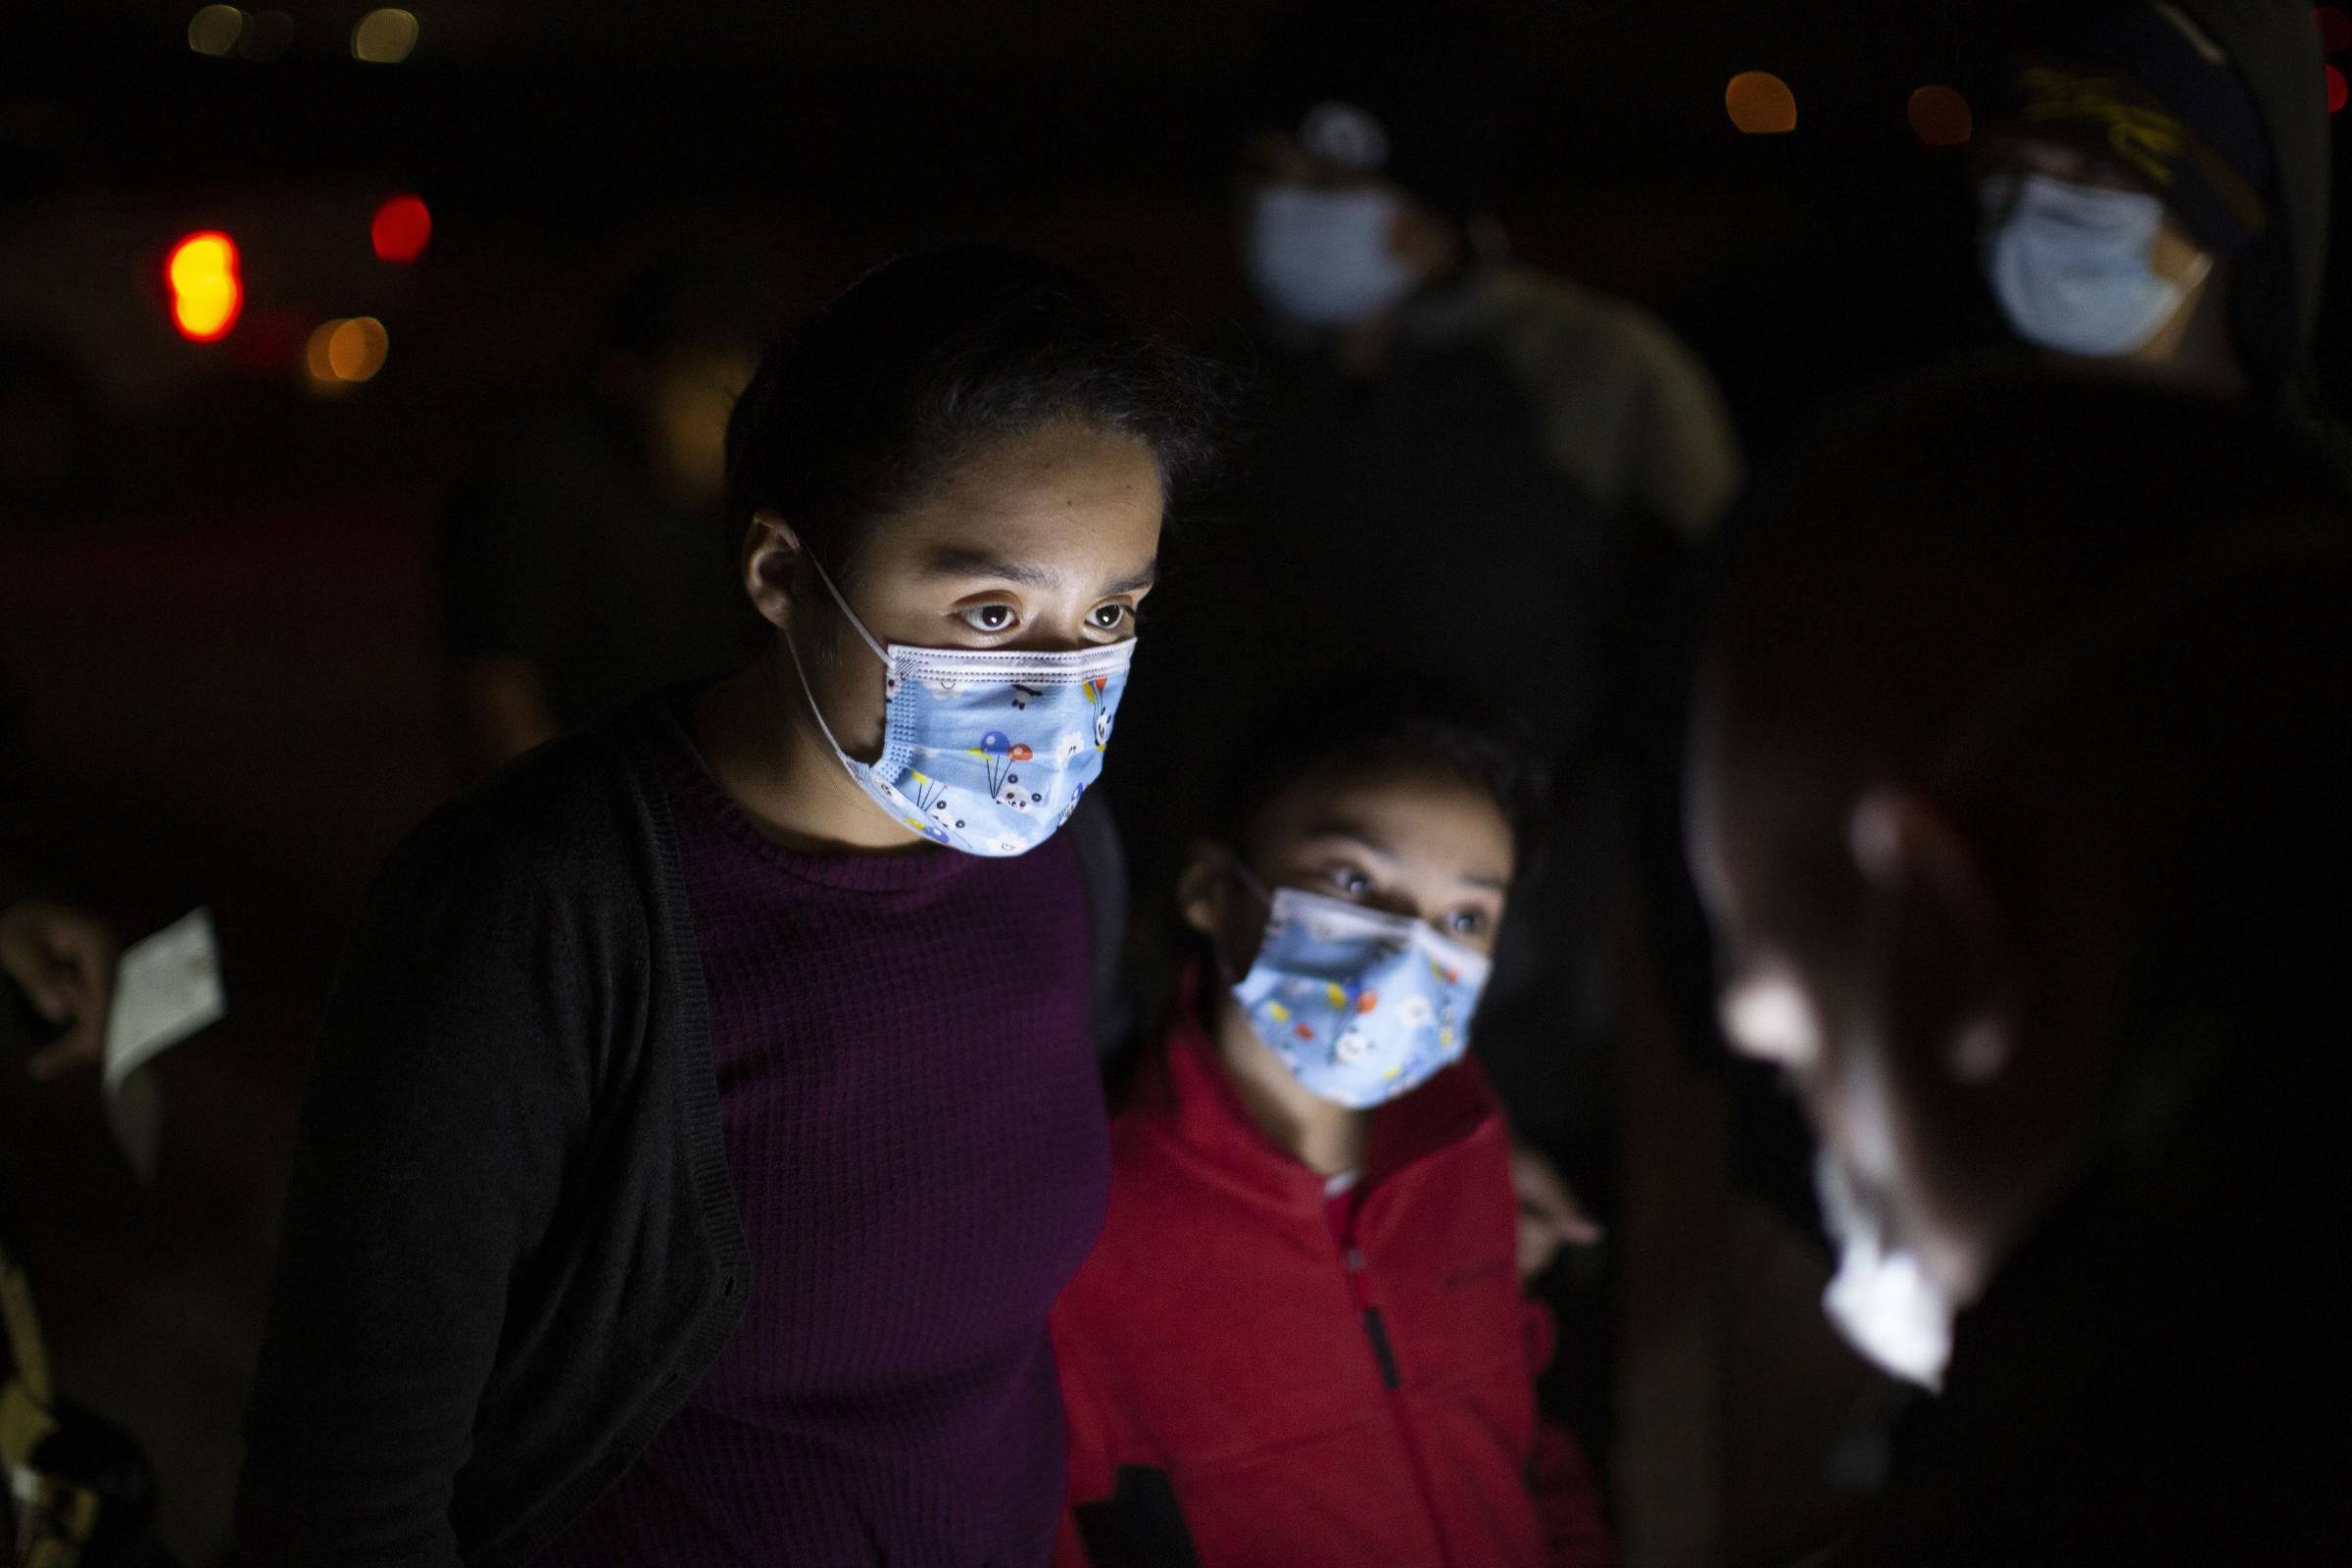 Fatima Nayeli, 13, left, and her sister, Cynthia Stacy, eight, answer questions from a US Border Patrol agent at an intake site after they were smuggled on an inflatable raft across the Rio Grande river in Roma, Texas. The sisters travelled from El